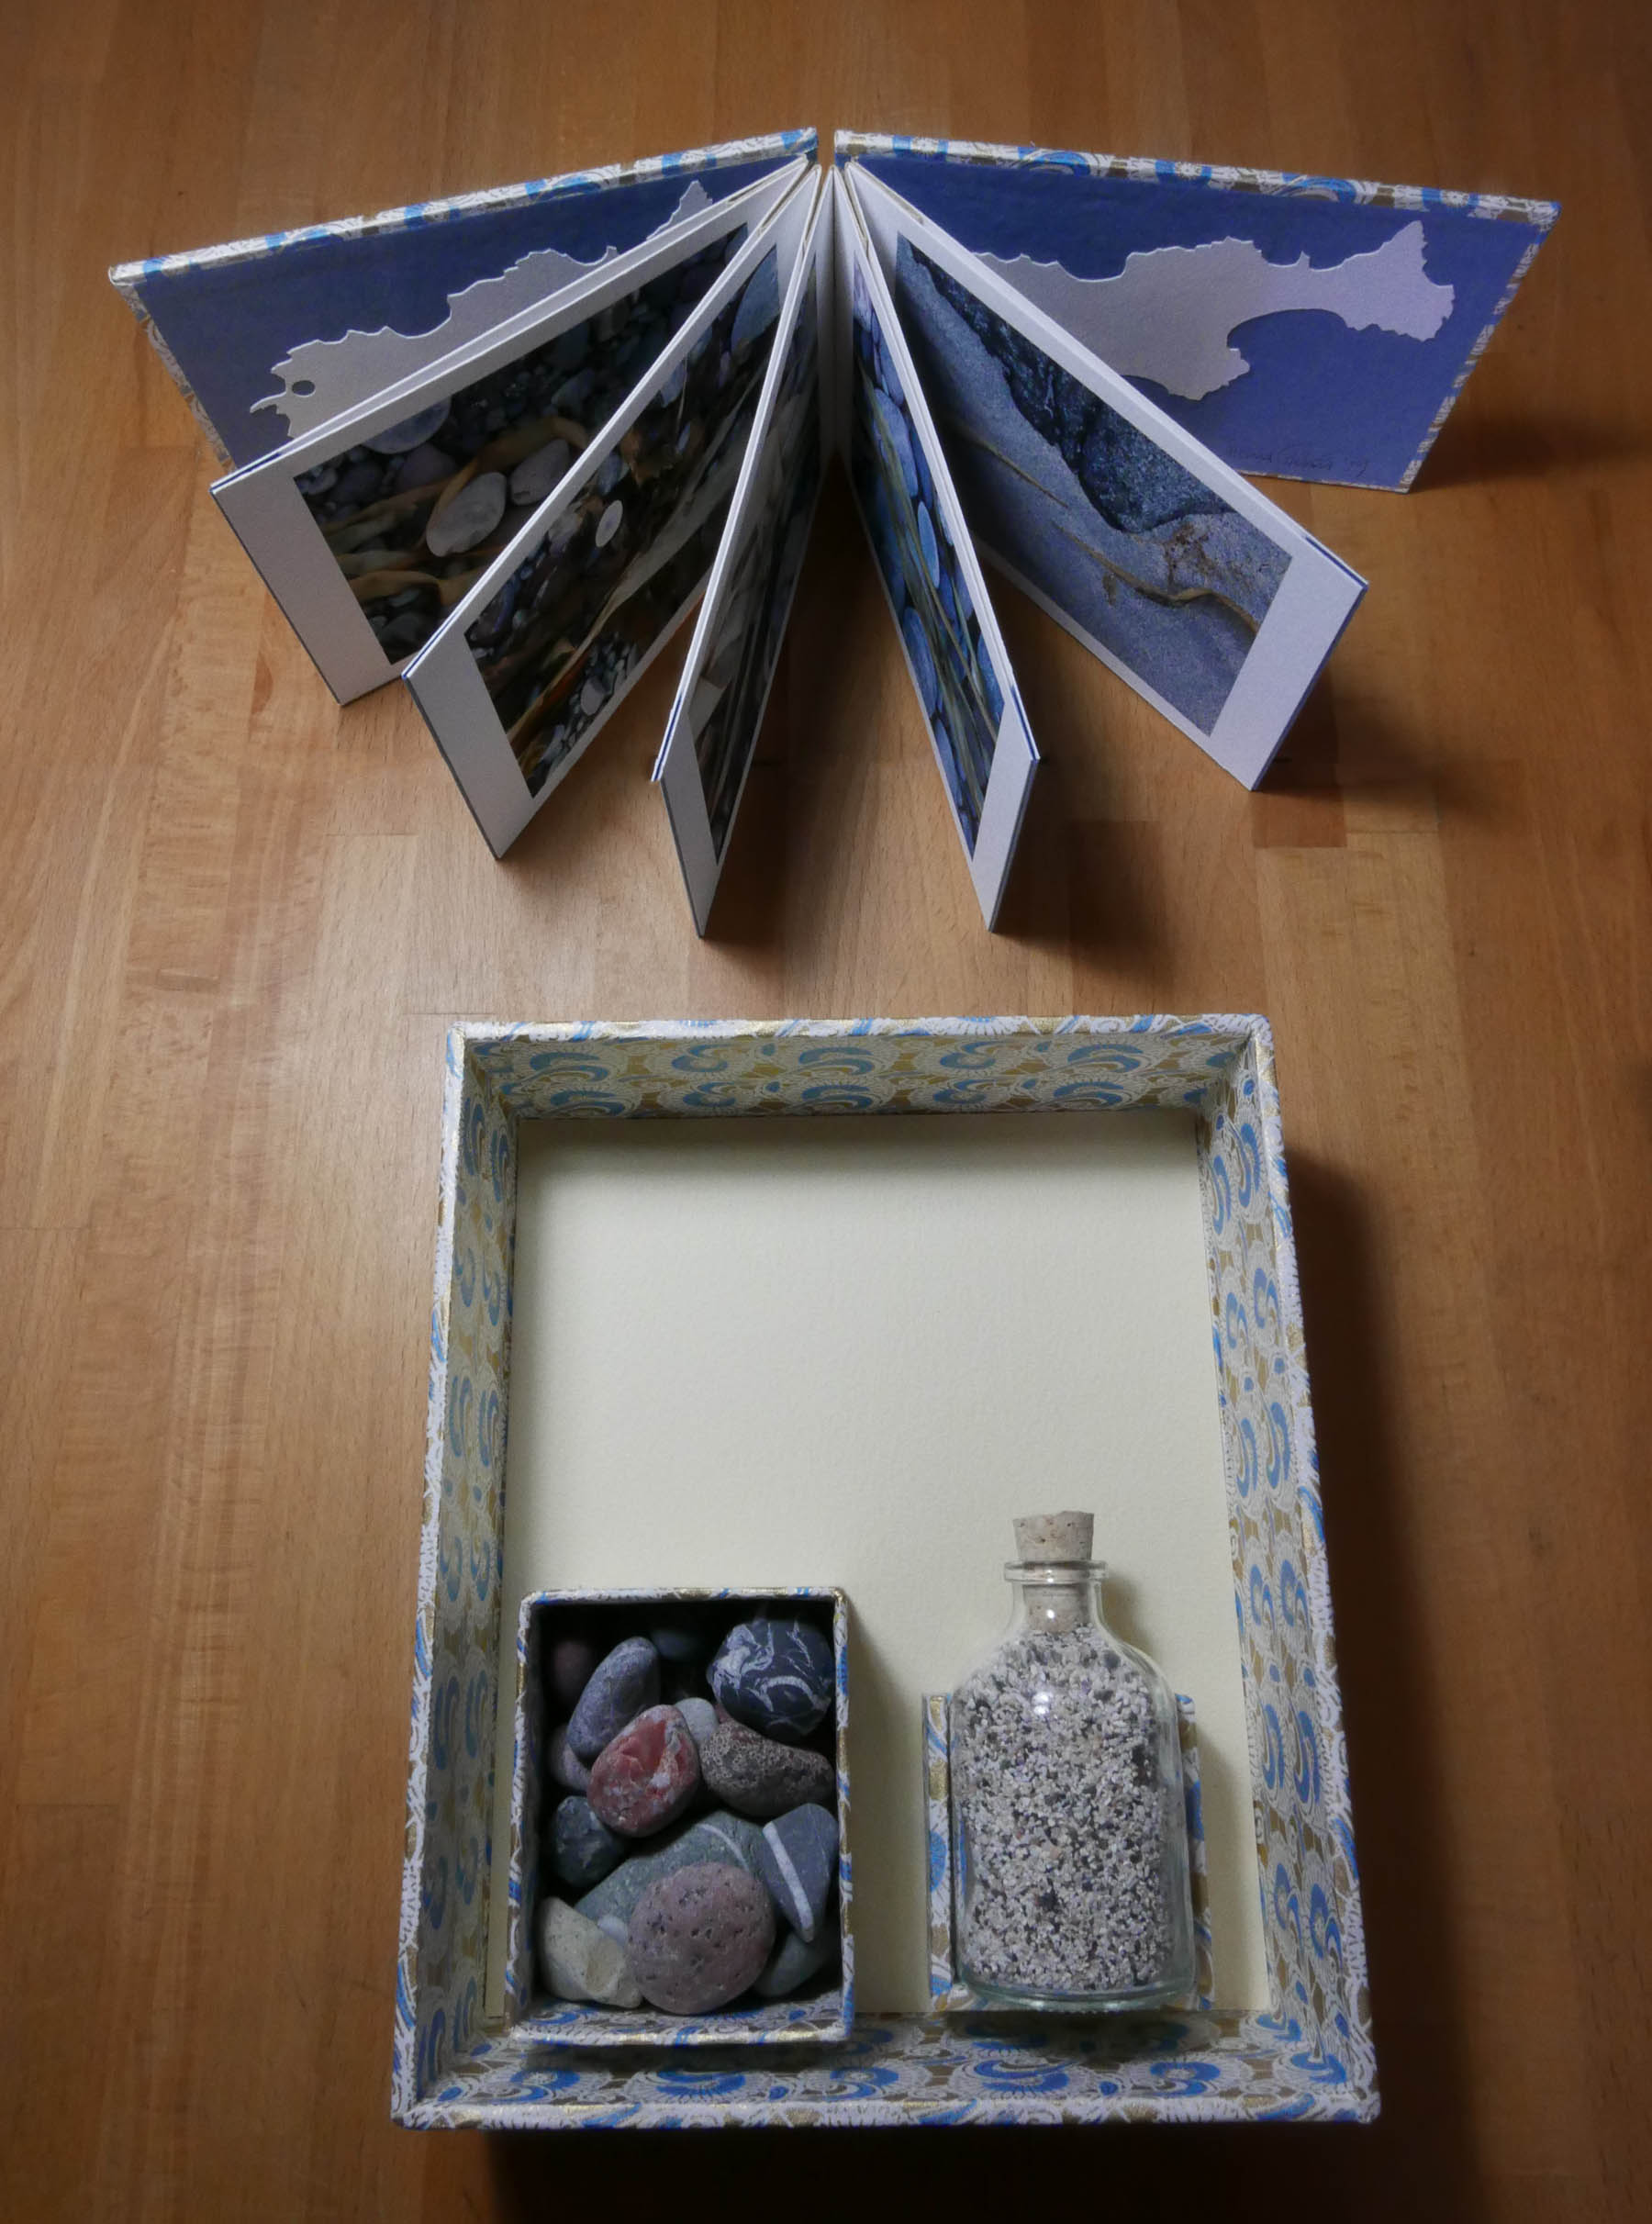 Hough Bay artists' book and presentation box